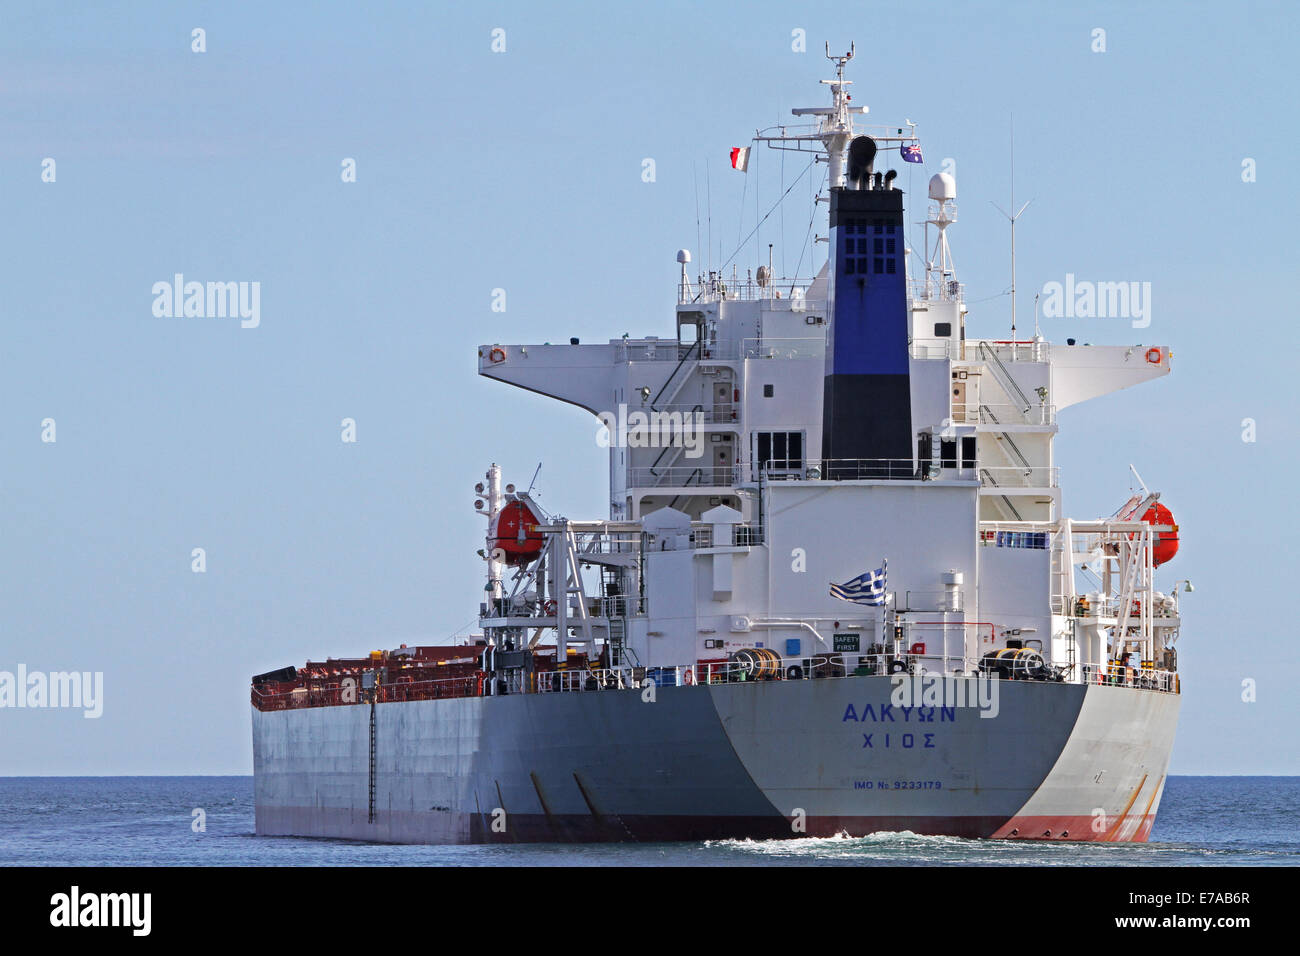 The bulk carrier Alkyon departing Adelaide Australia - Stock Image